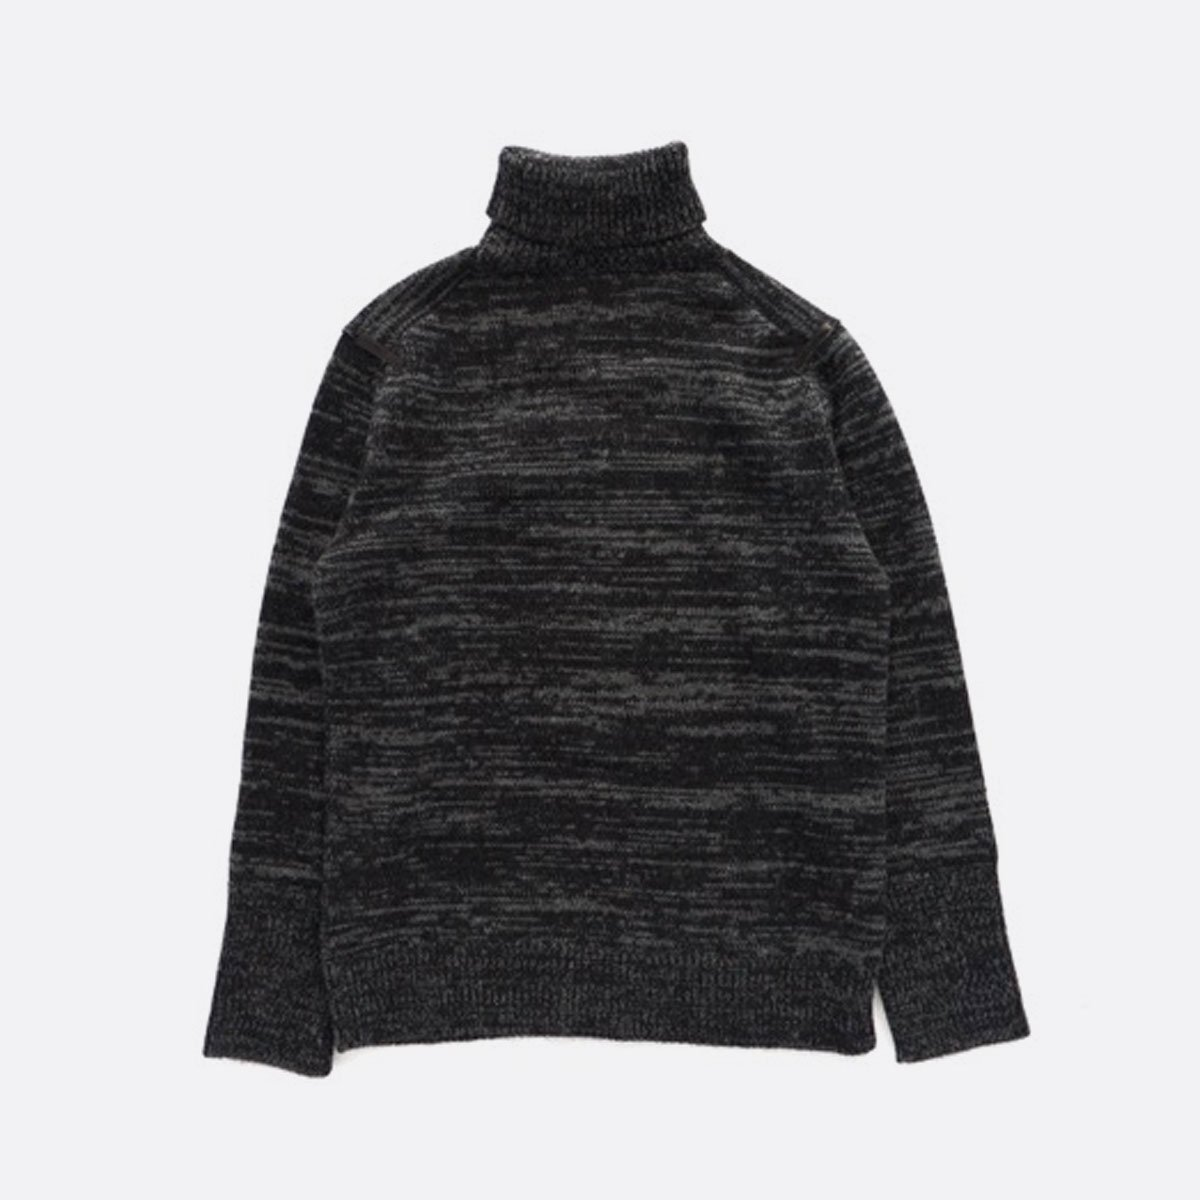 THE INOUE BROTHERS…  Low Gauge Turtle Neck Sweater (Grey)2